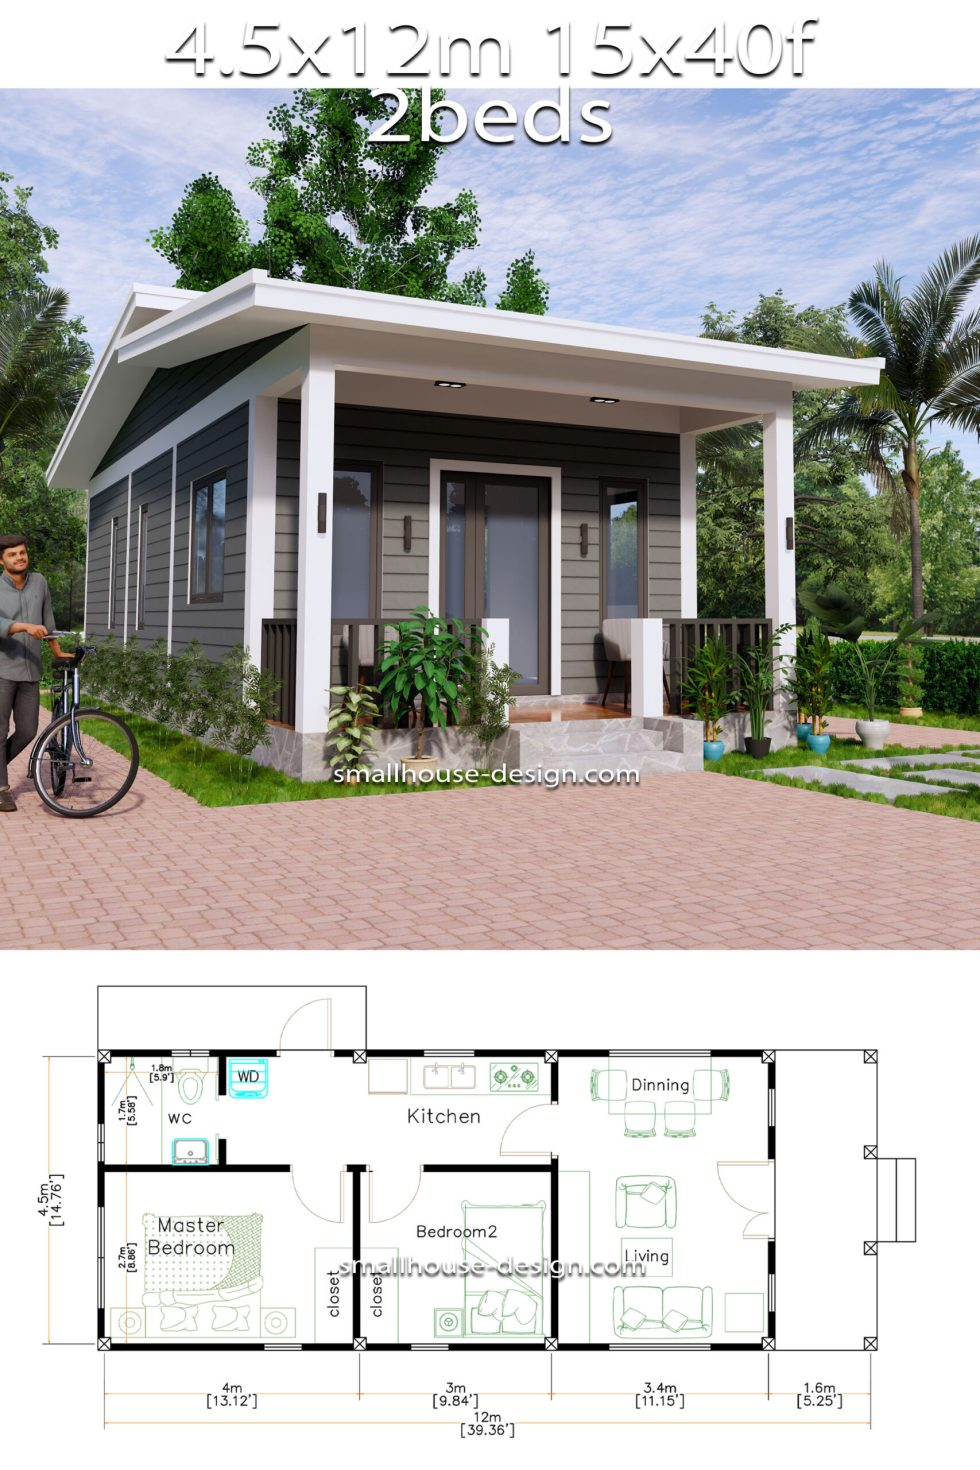 15x40 Small House Design 2 Bedrooms Shed Roof full plan